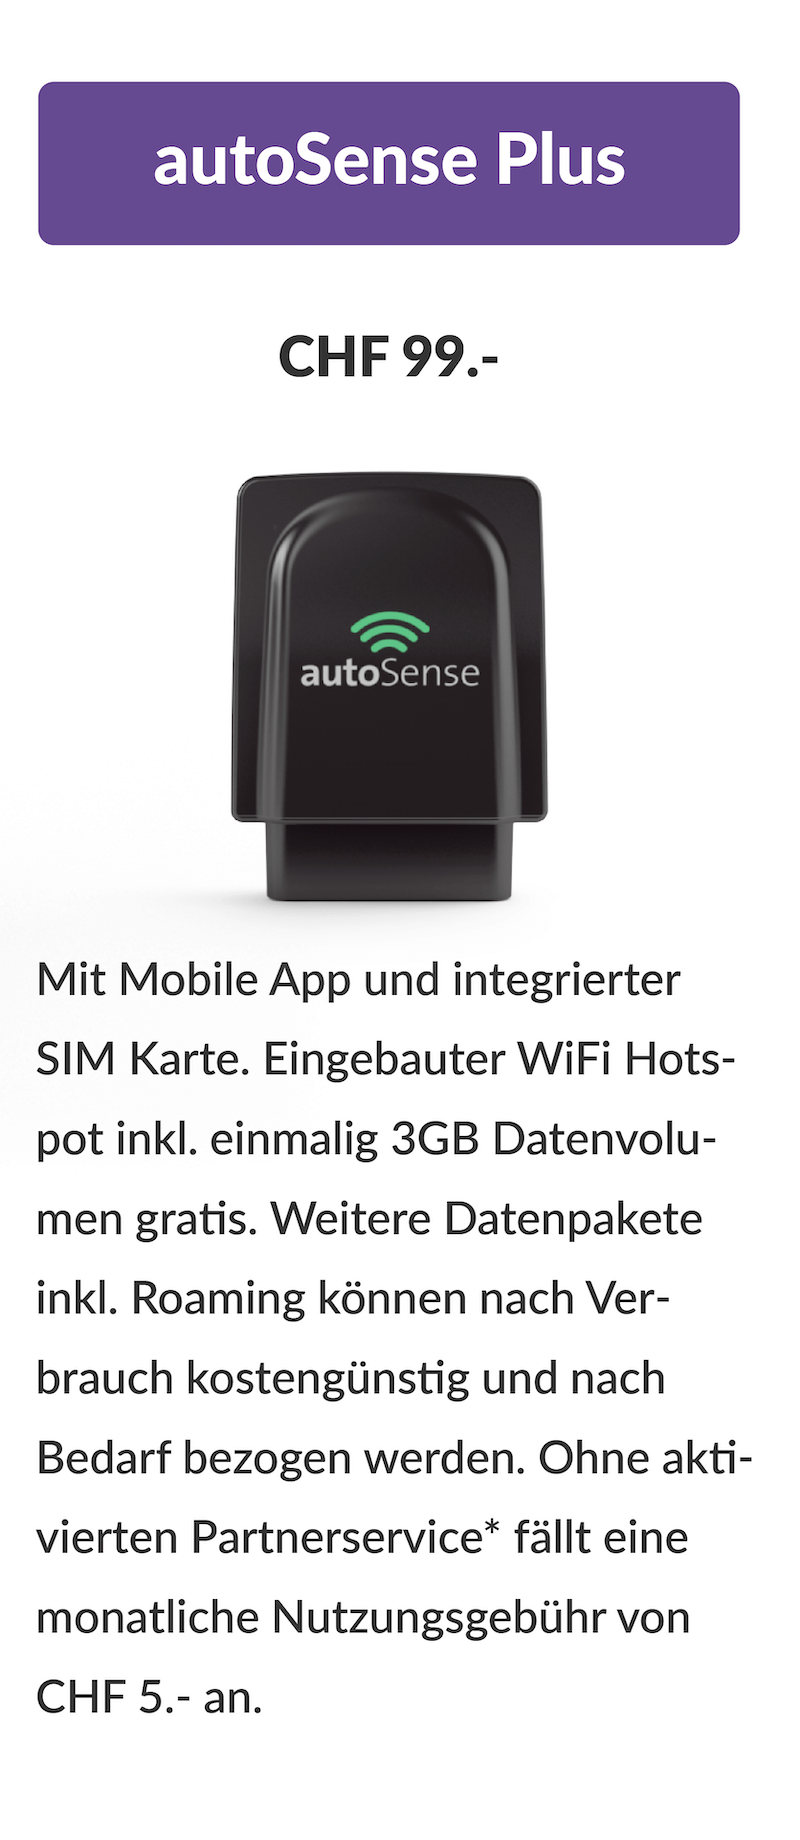 autoSense Plus - In addition to the many features and services offered by autoSense , autoSense Plus turns your car into a mobile wifi hotspot.